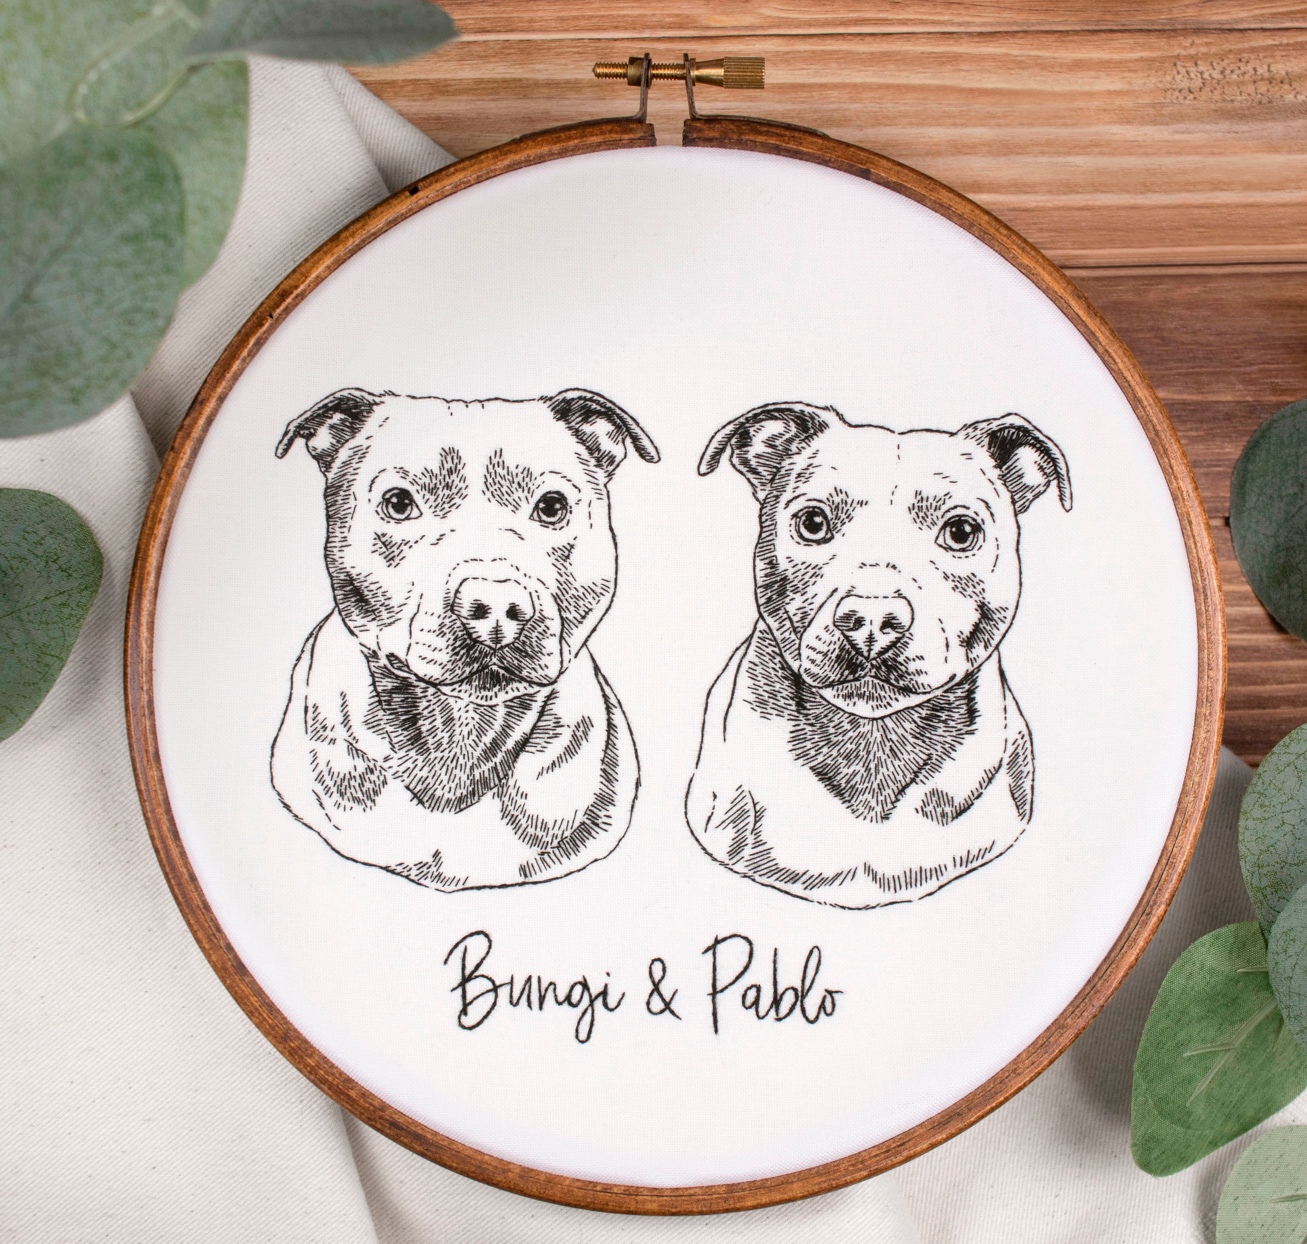 black embroidery project of two dogs